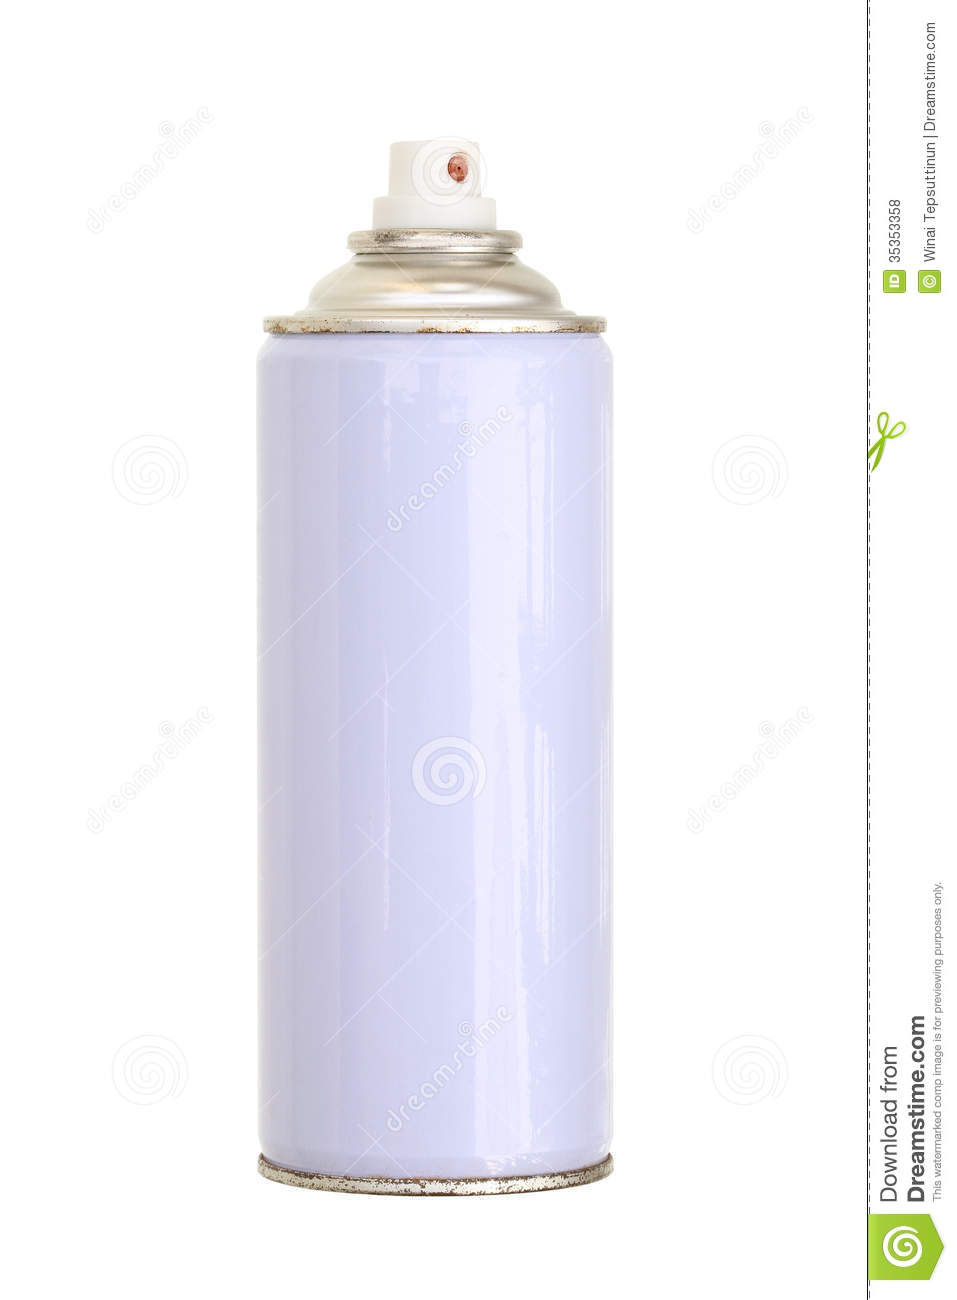 Spray Paint Can Stock Photo Image Of Metal Isolated 35353358